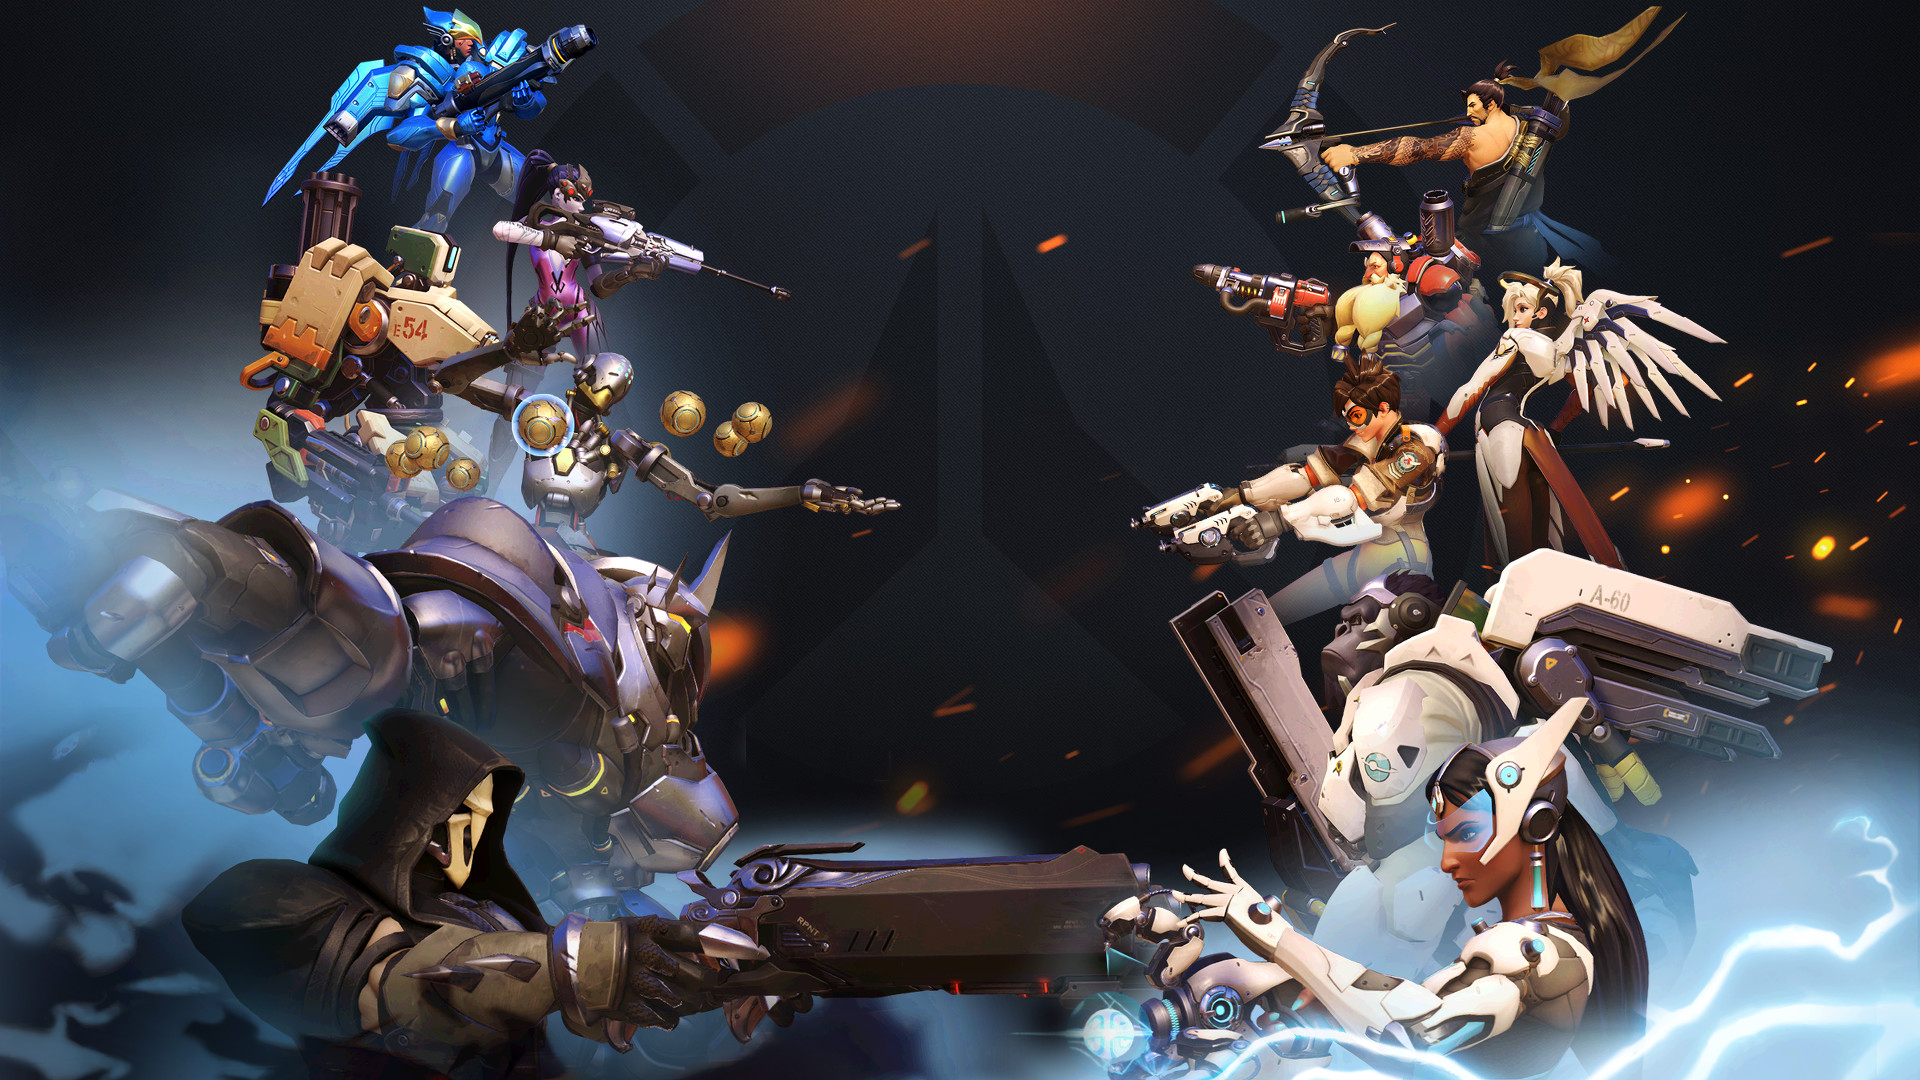 1920x1080 General  Blizzard Entertainment Overwatch Tracer (Overwatch)  Zenyatta (Overwatch) Tekhartha Zenyatta Pharah